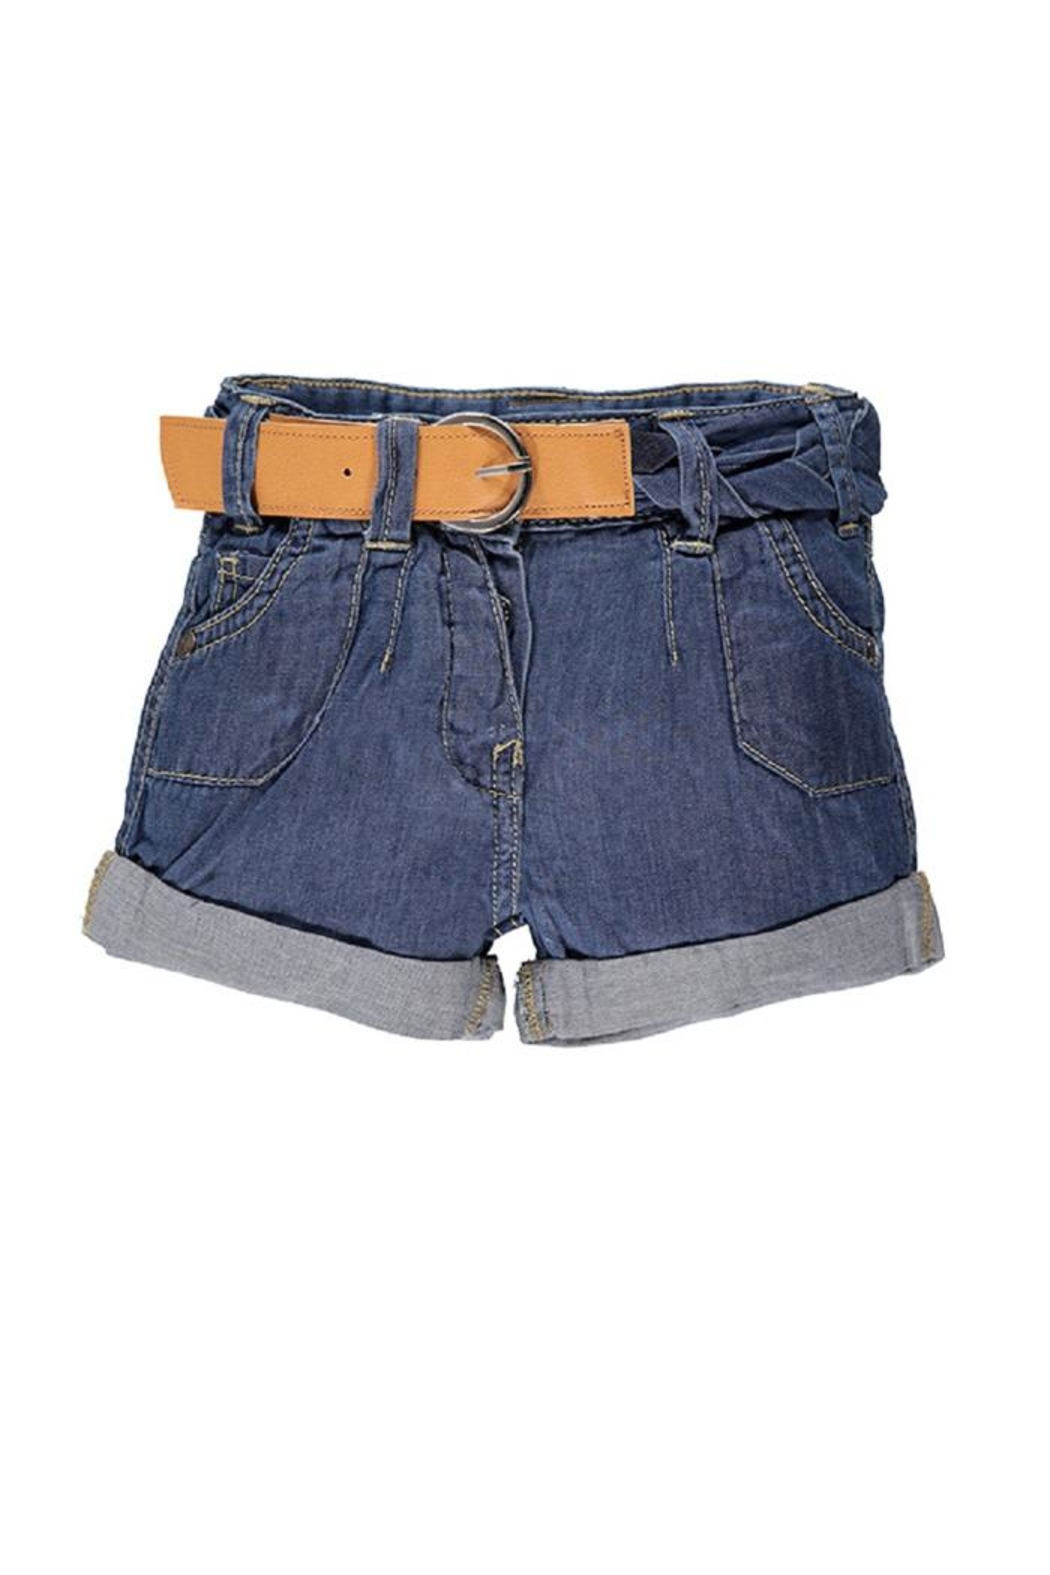 Kanz Belted Denim Short - Main Image